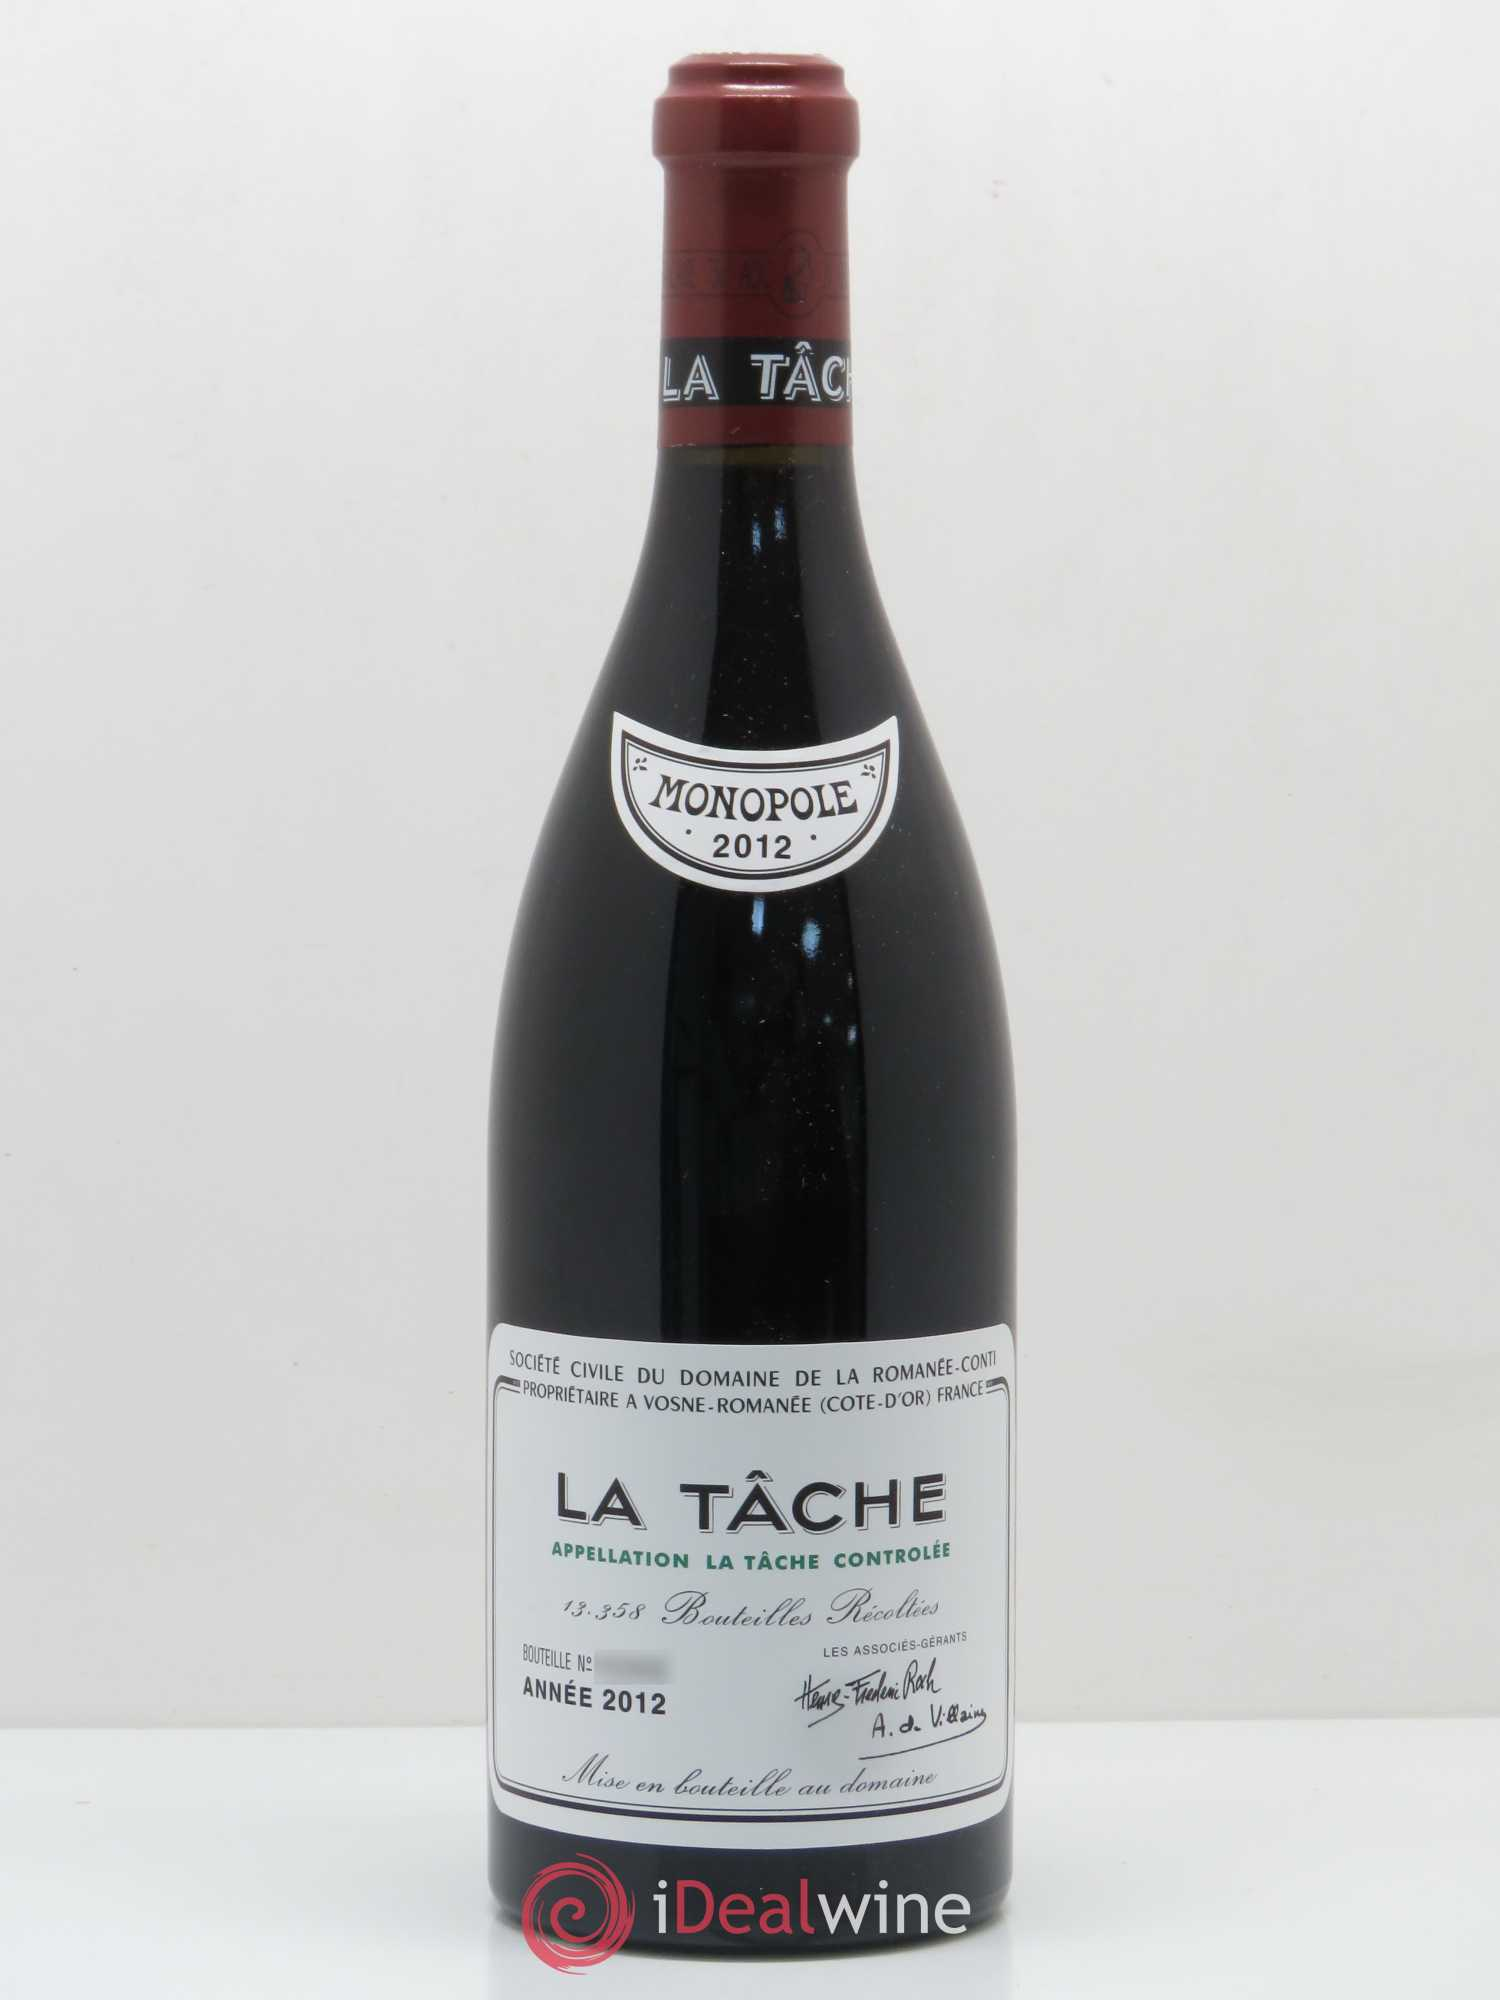 La Tâche Grand Cru Domaine de la Romanée-Conti  2012 - Lot of 1 Bottle